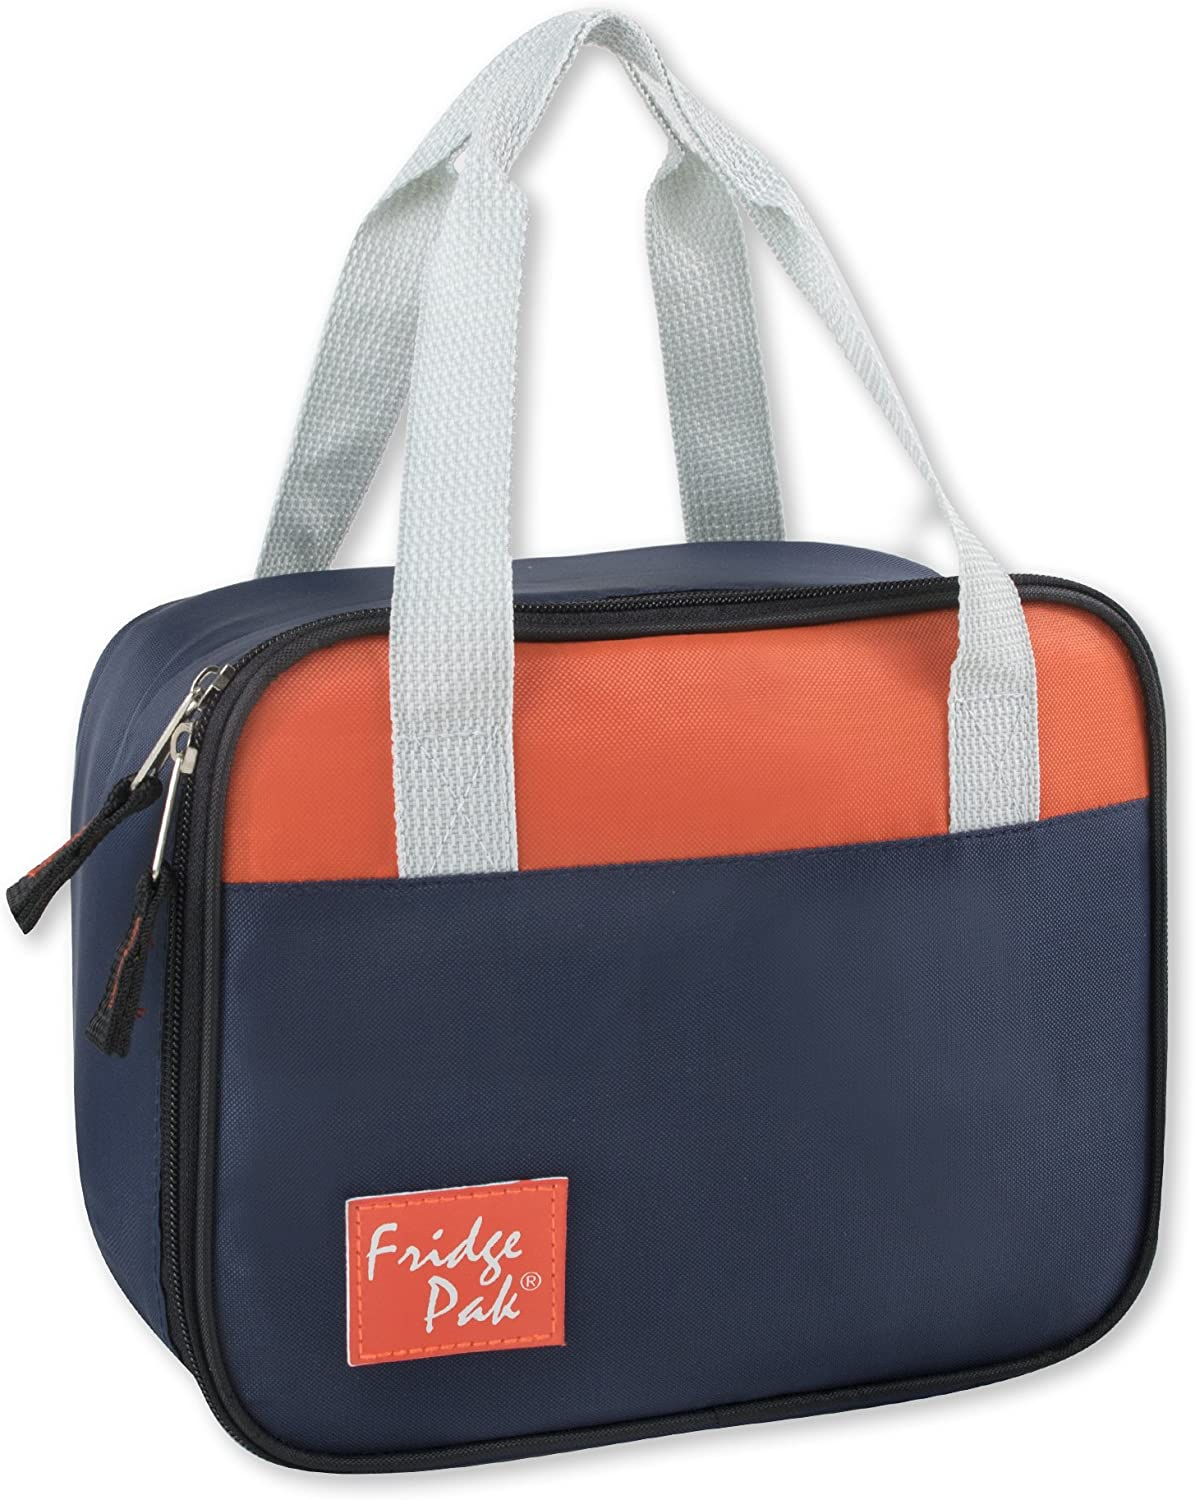 Fridge Pak Insulated Lunch Box Totes with Reinforced Carry Handles and Wide Zipper Opening